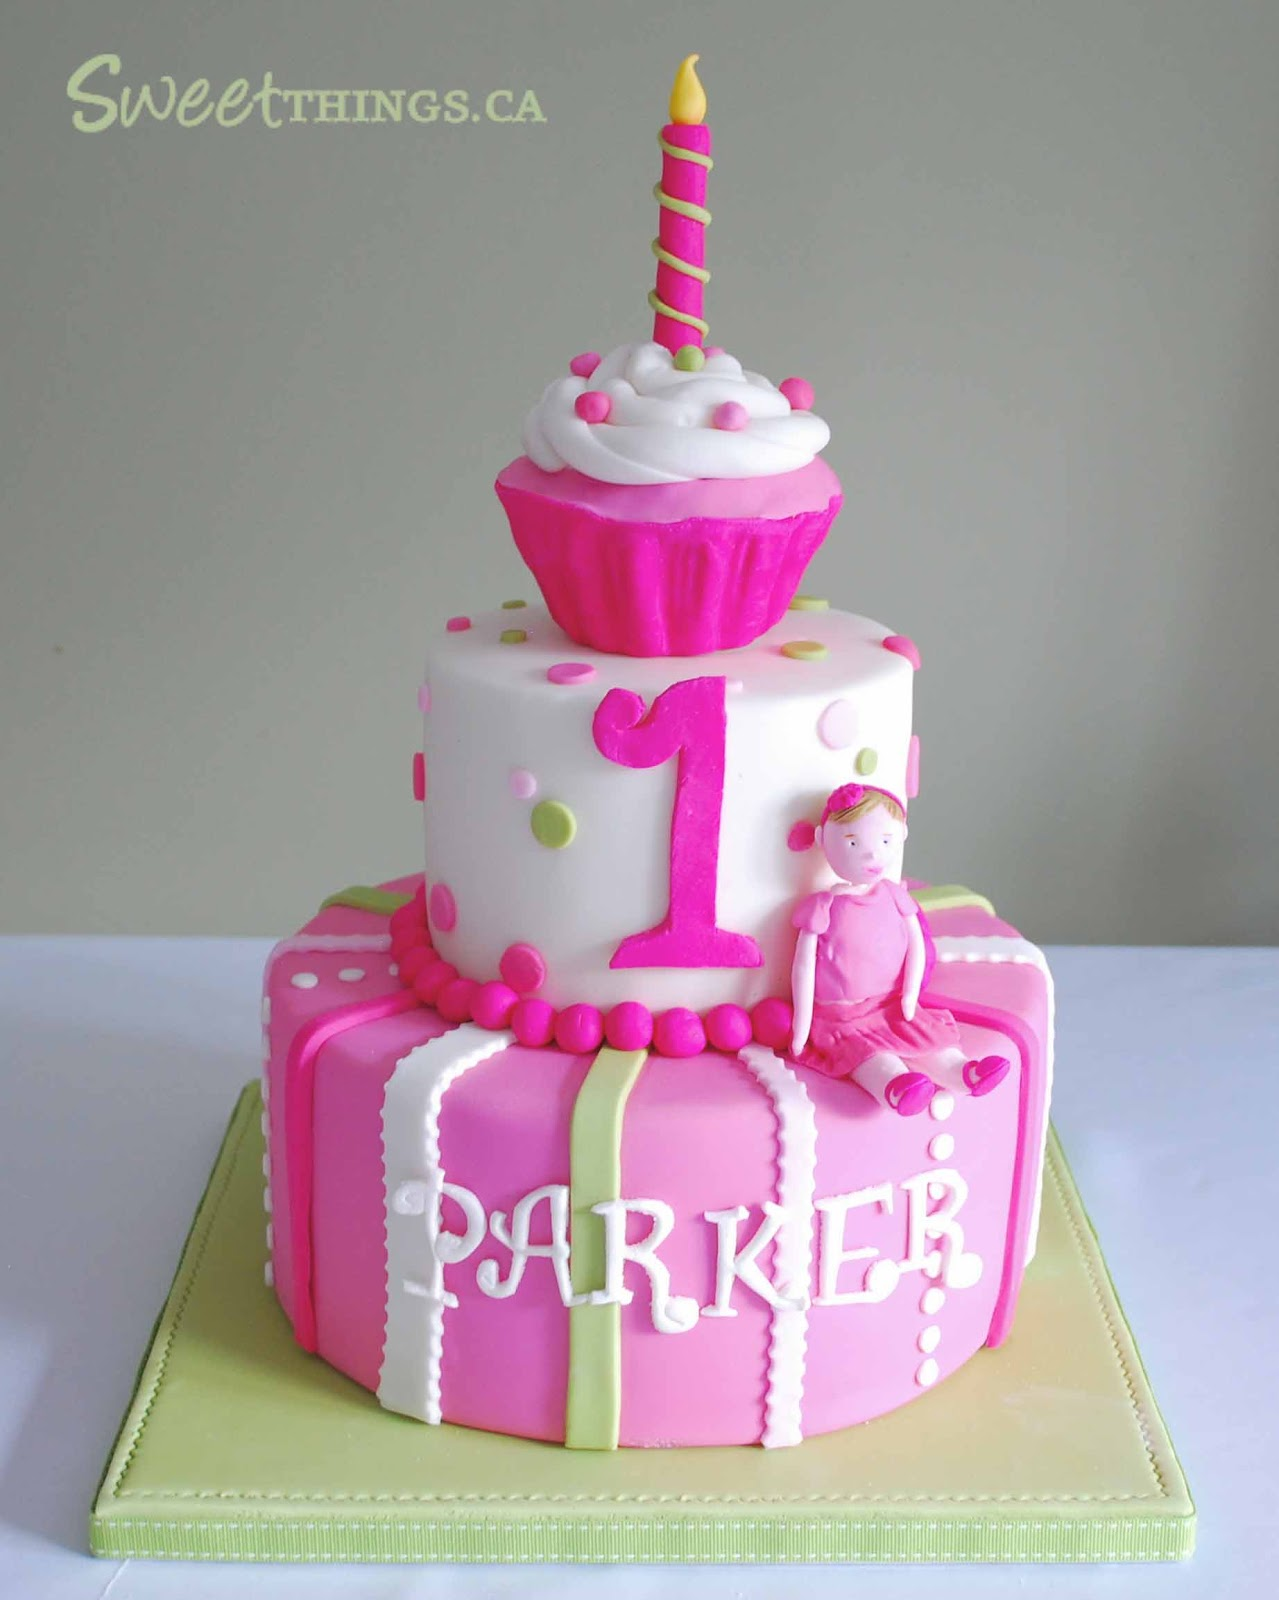 Birthday Cake Designs For Girlfriend : SweetThings: Colorful 1st Birthday Cake